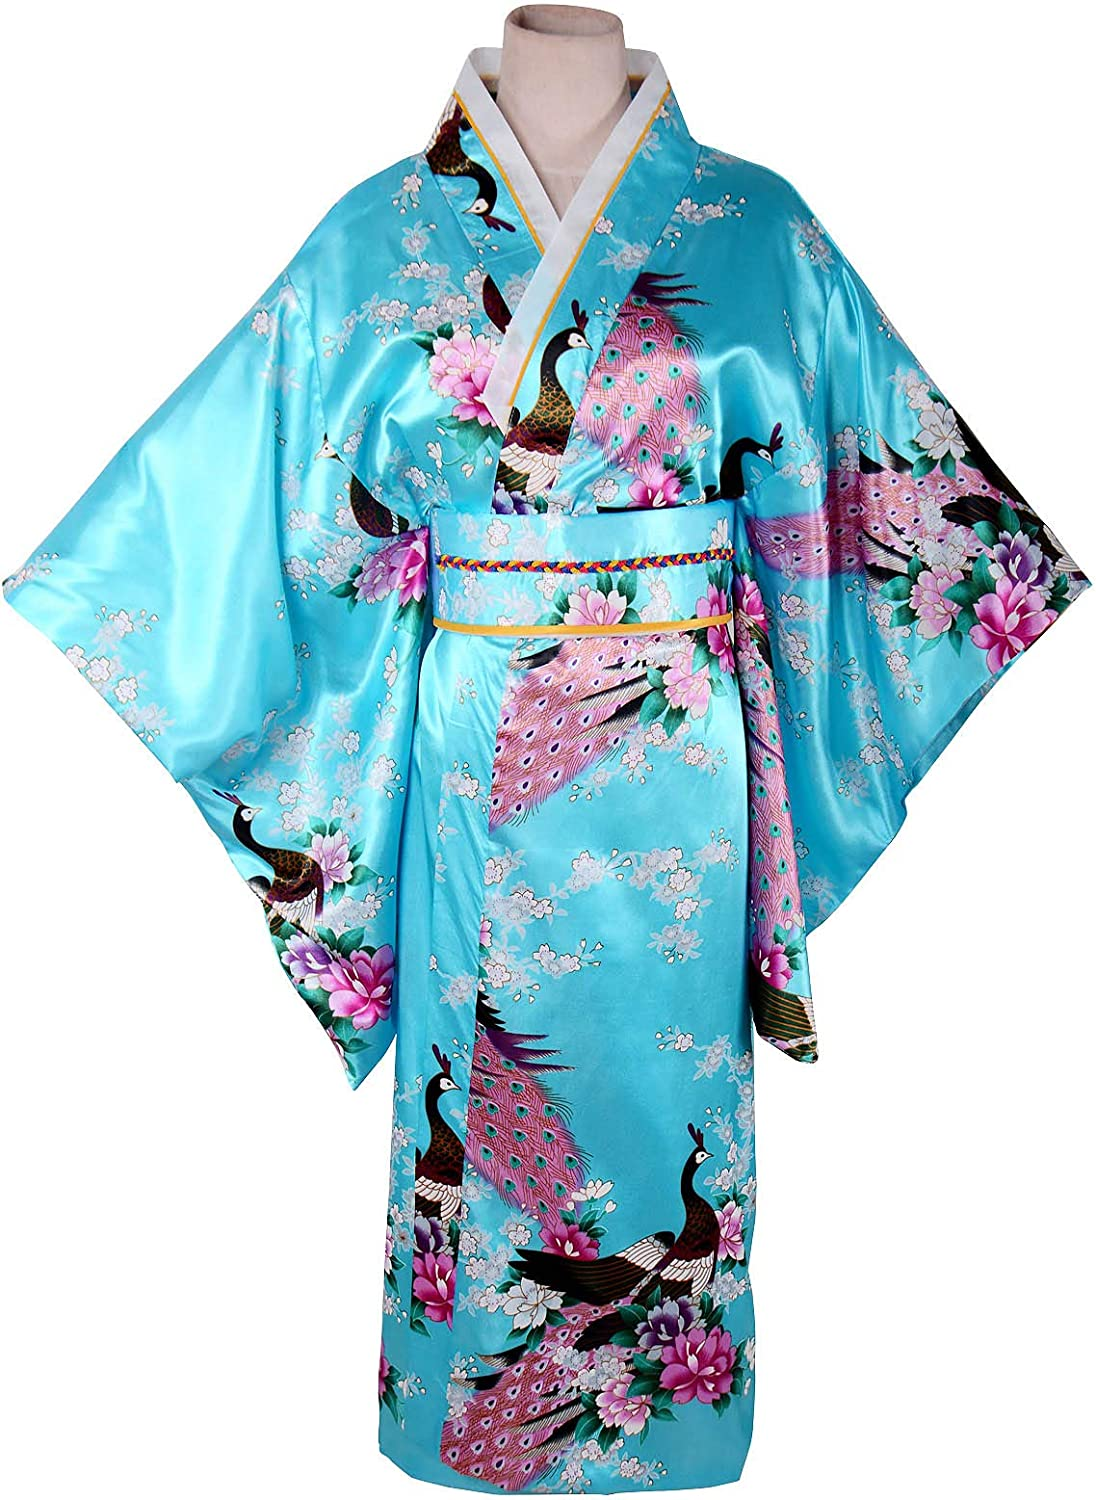 Womens Kimono Costume Adult Japanese Asian Top Dress Robe Sash Belt Fan Set Outfit